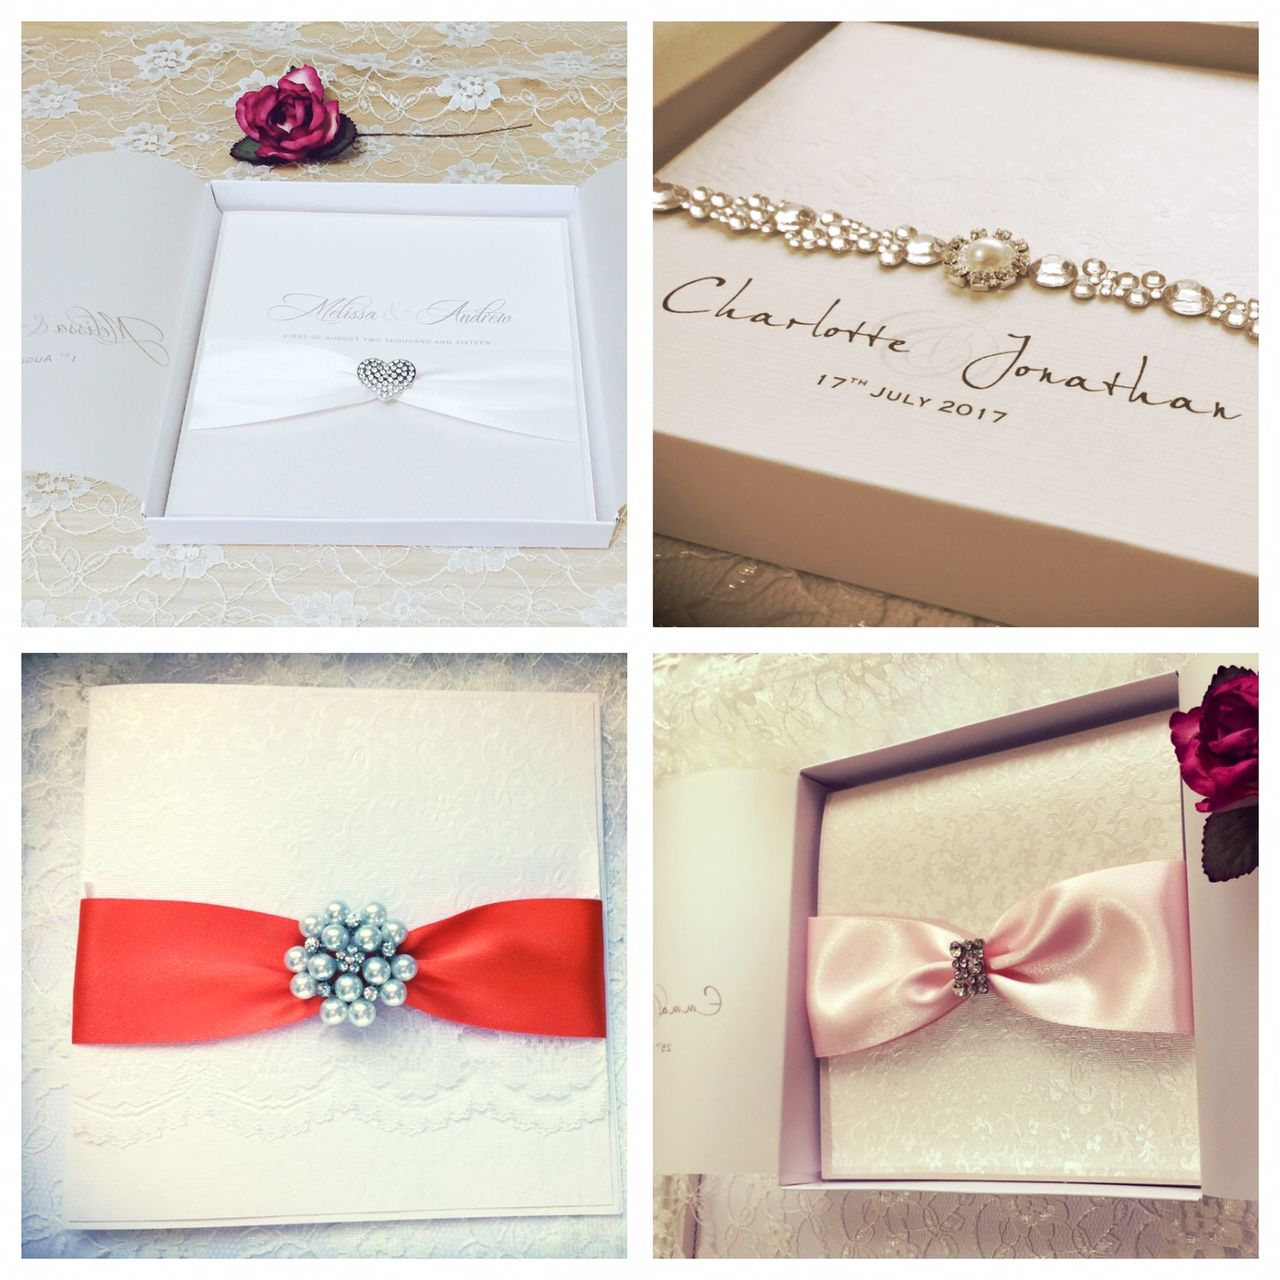 Quality boxed wedding invitations in a range of designs